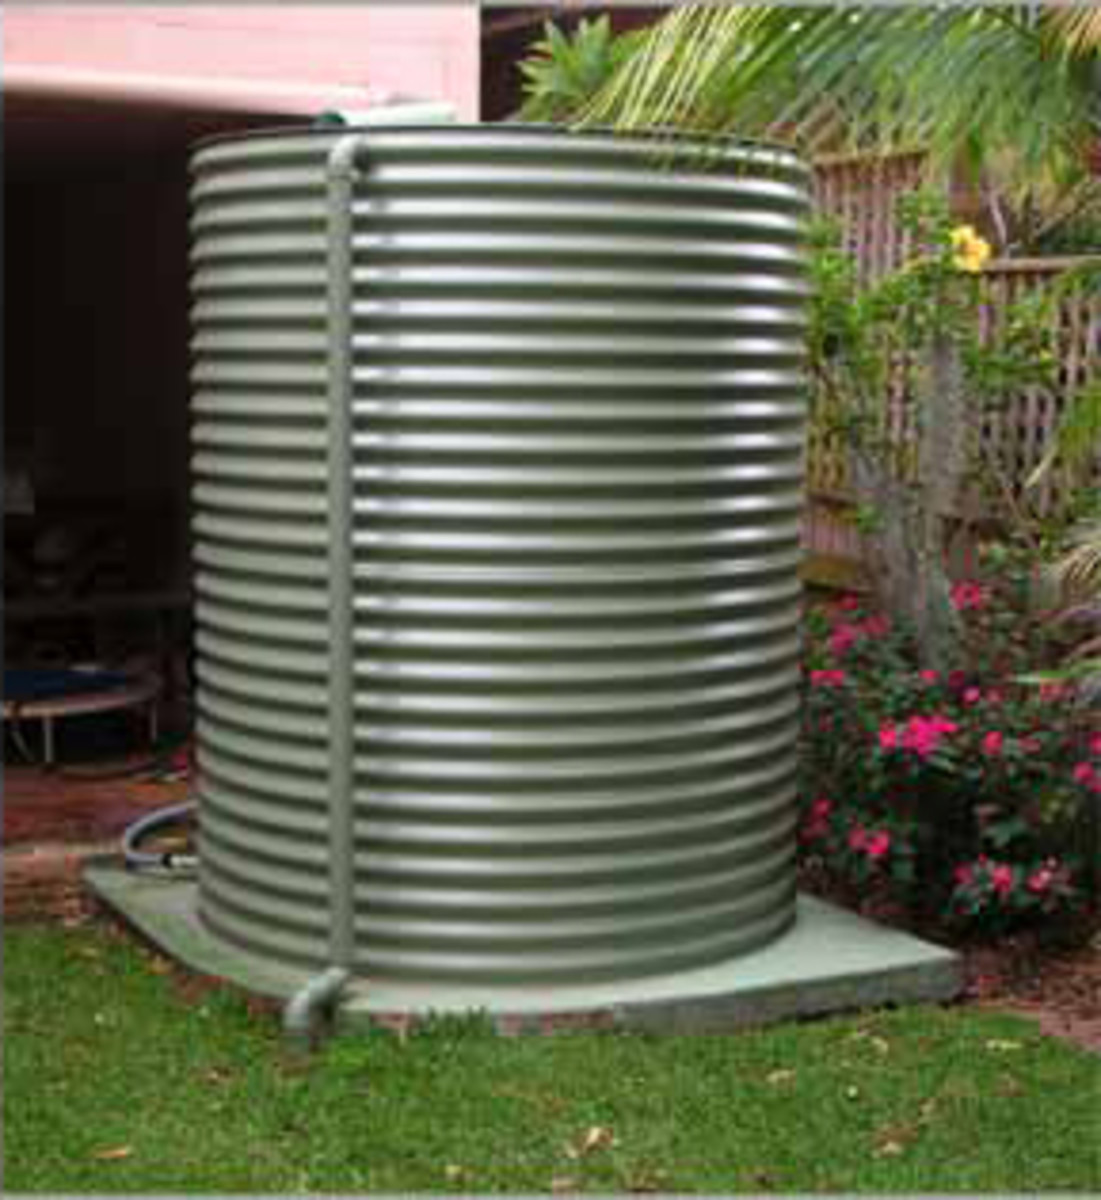 A nice little corrugated steel tank fitted into the garden environment.